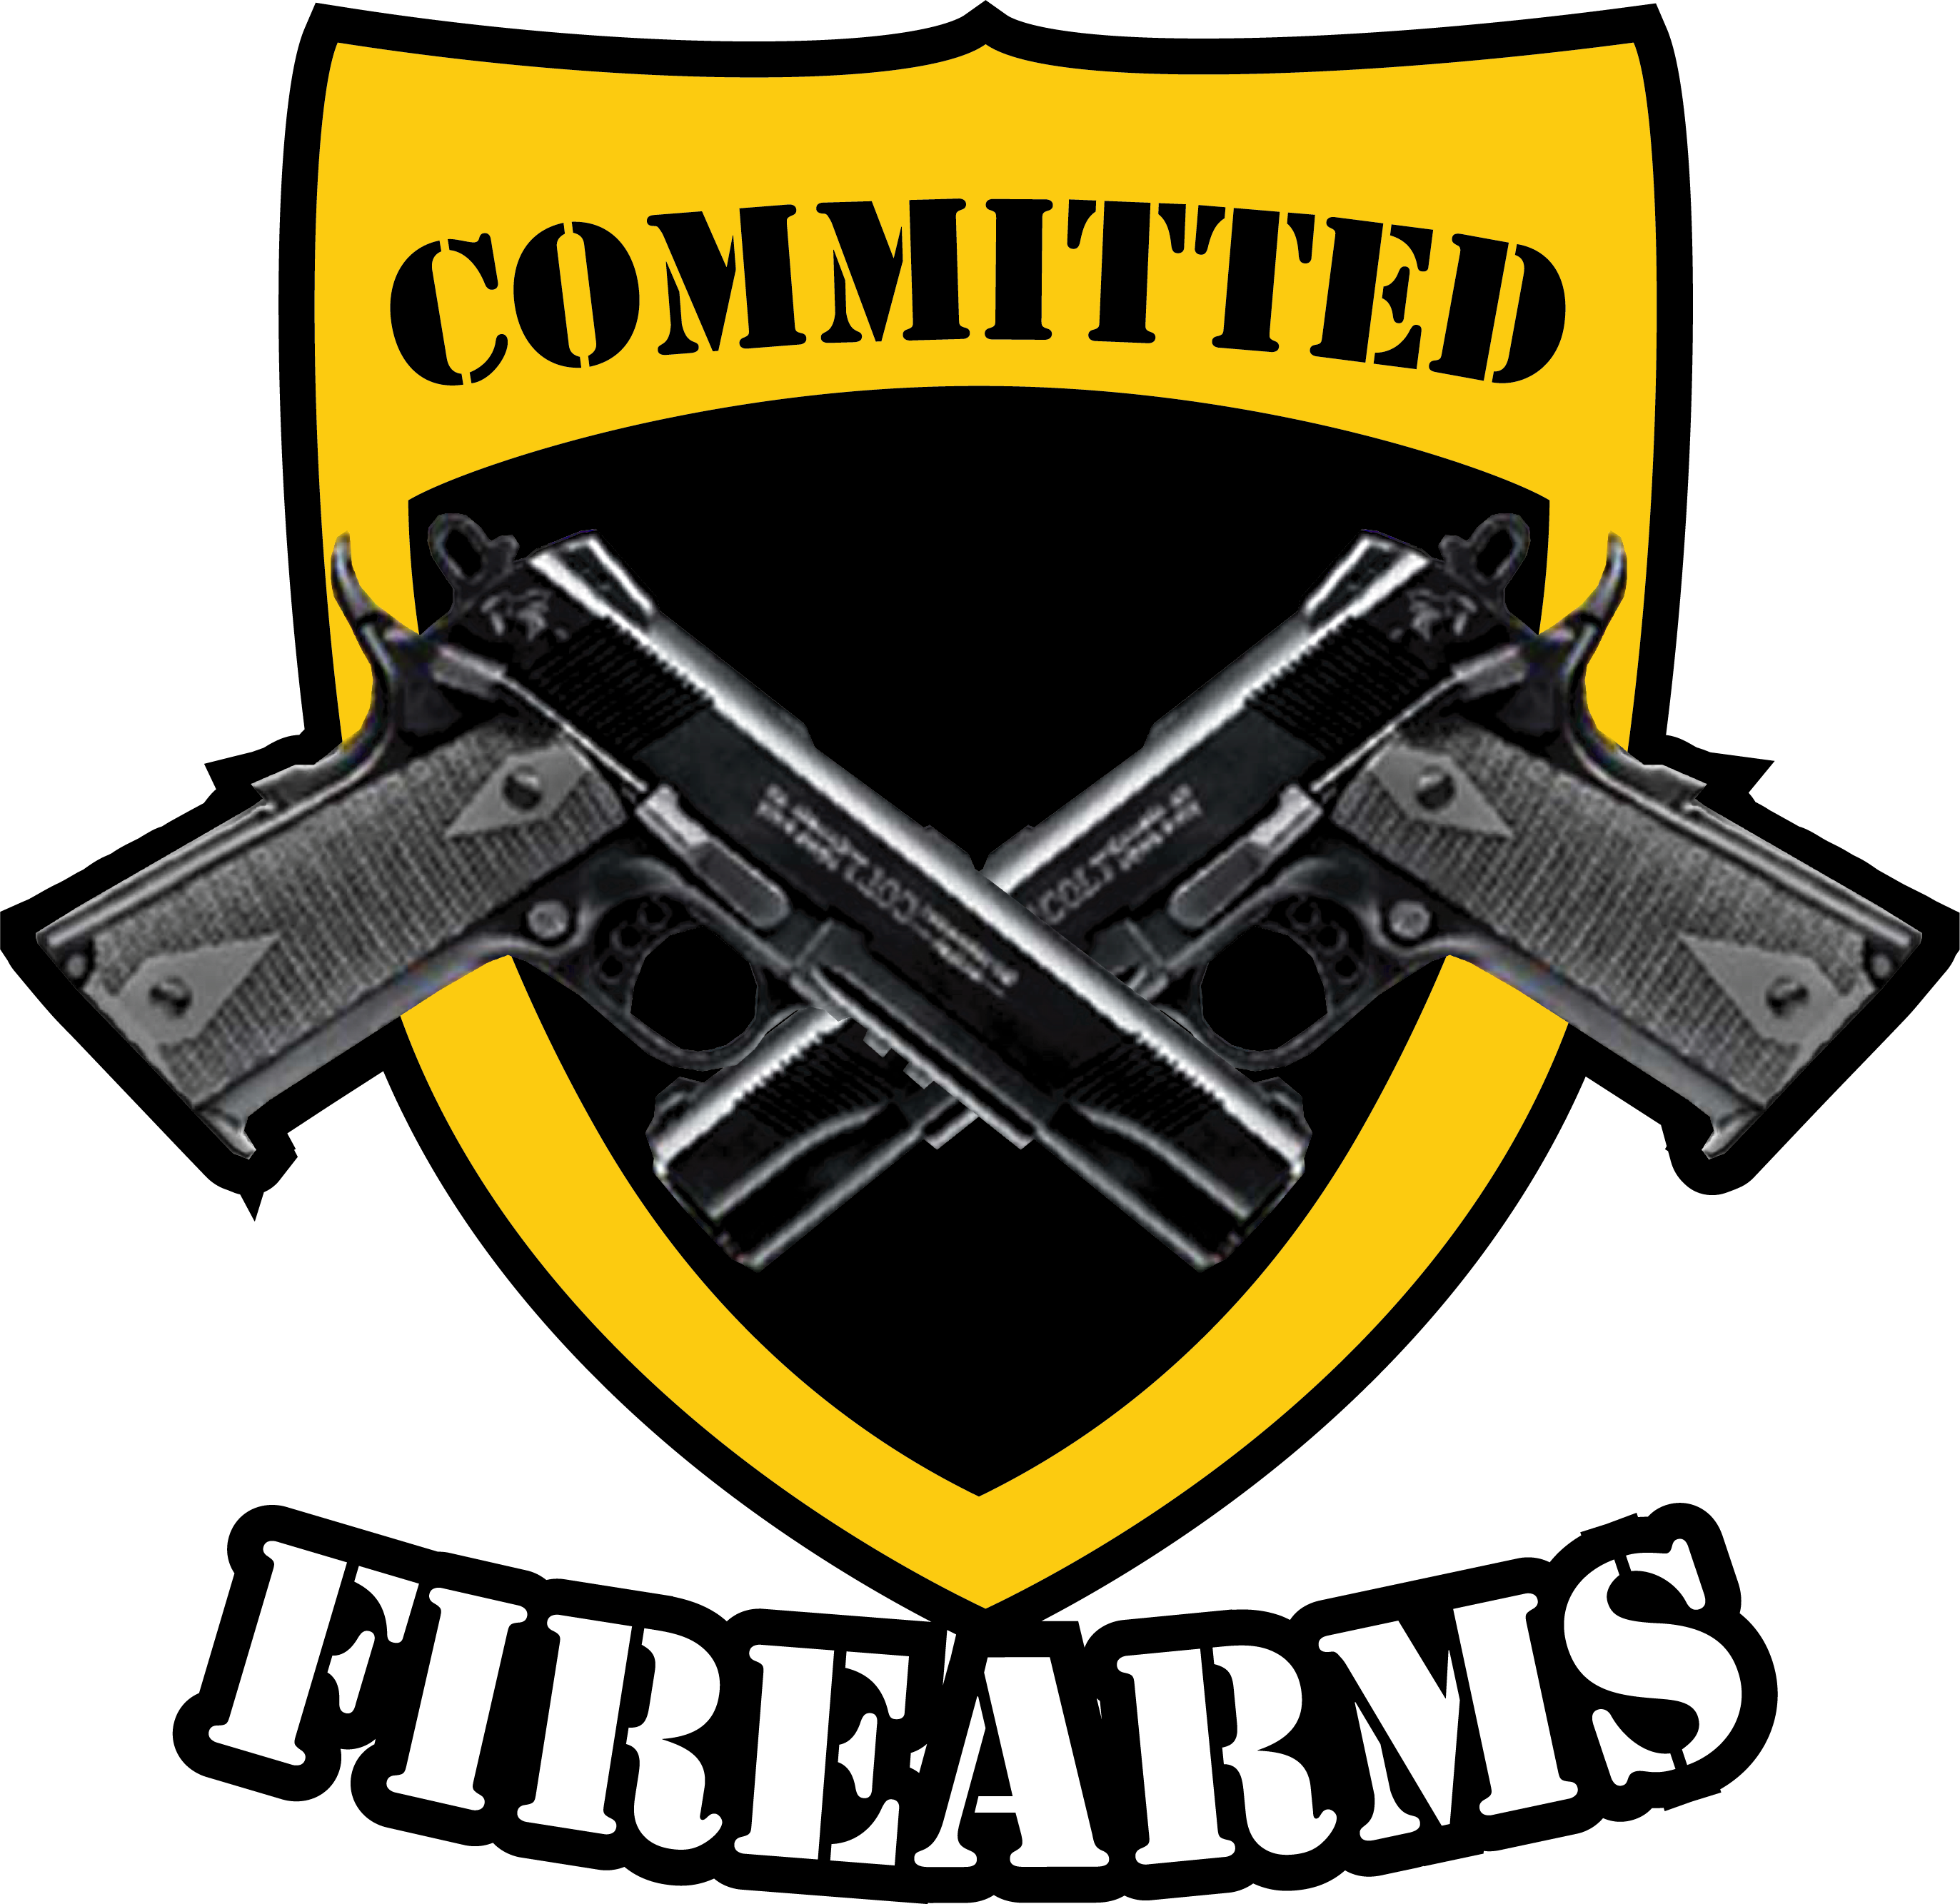 Committed Firearms